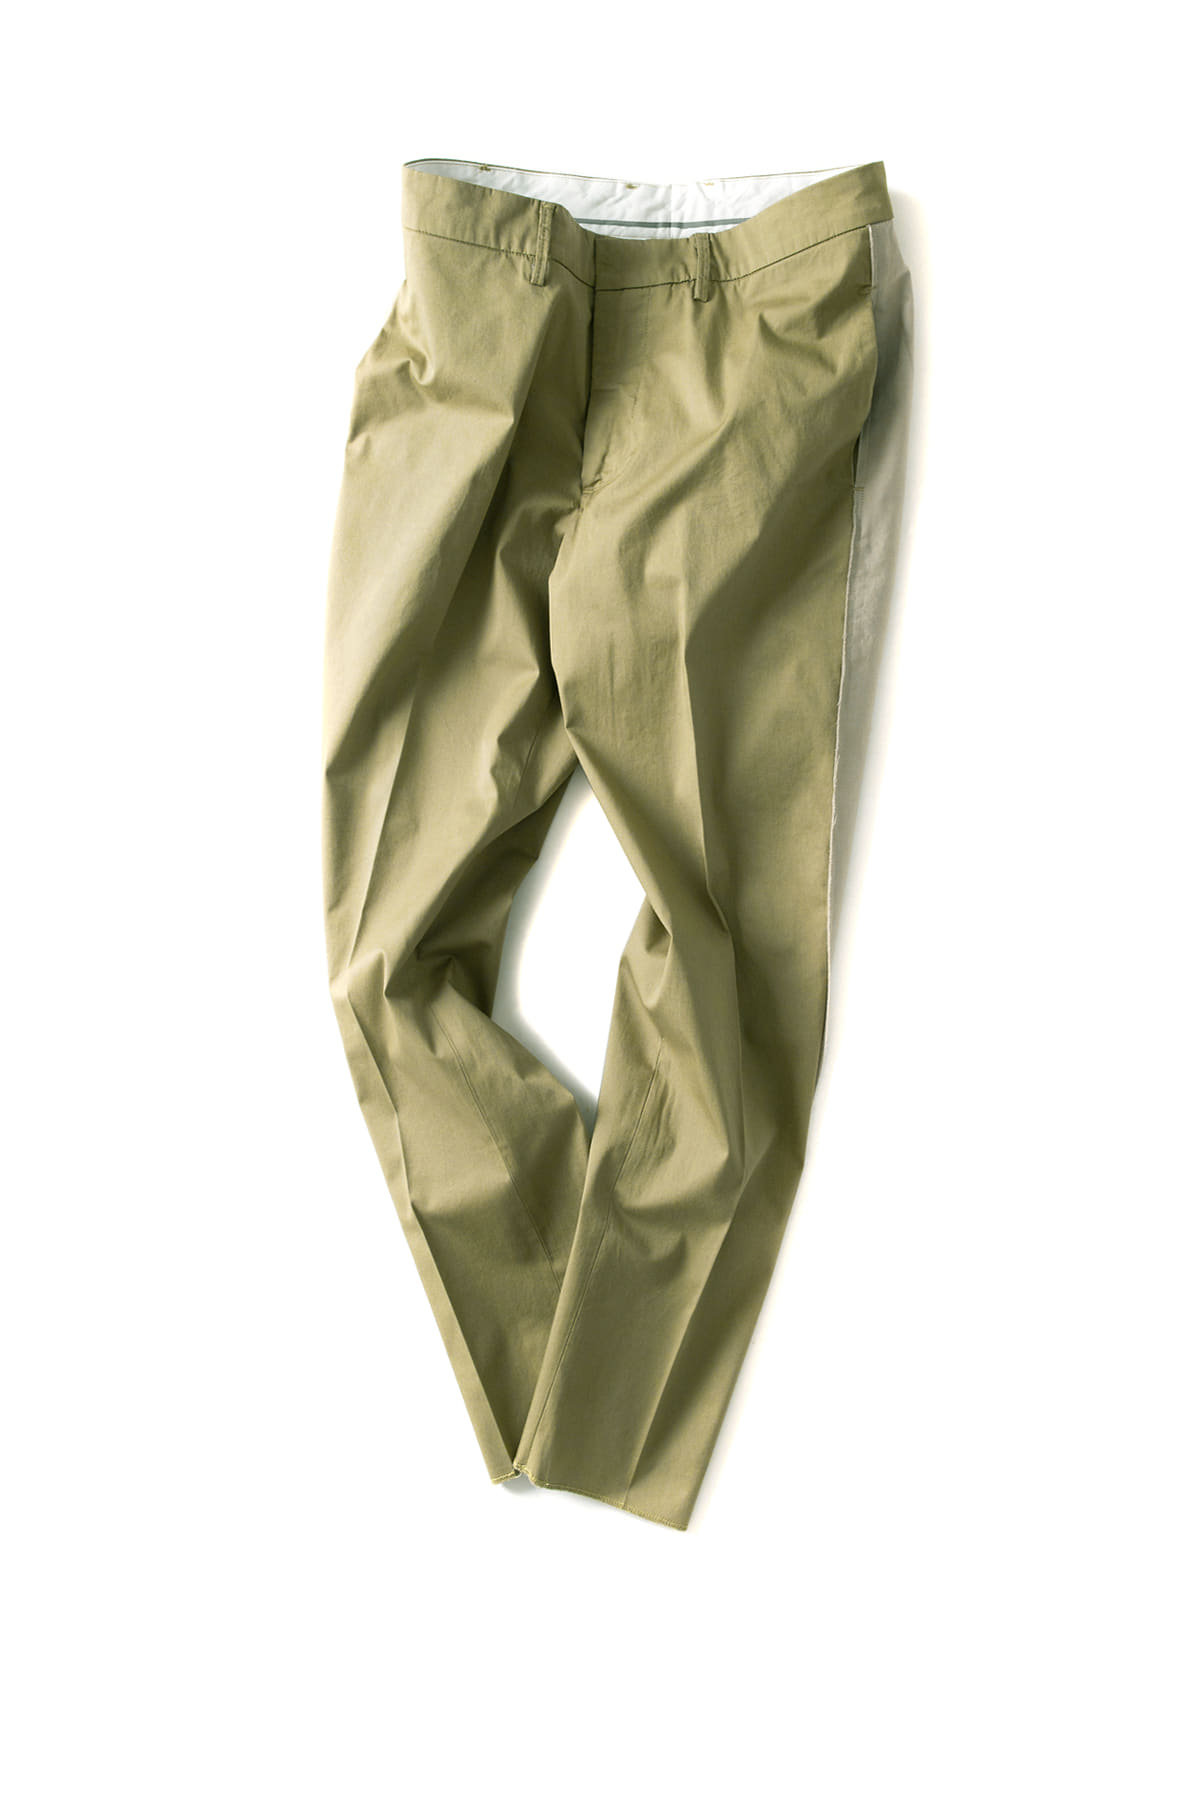 THE EDITOR : Woven Man Trousers 5610 (Green)